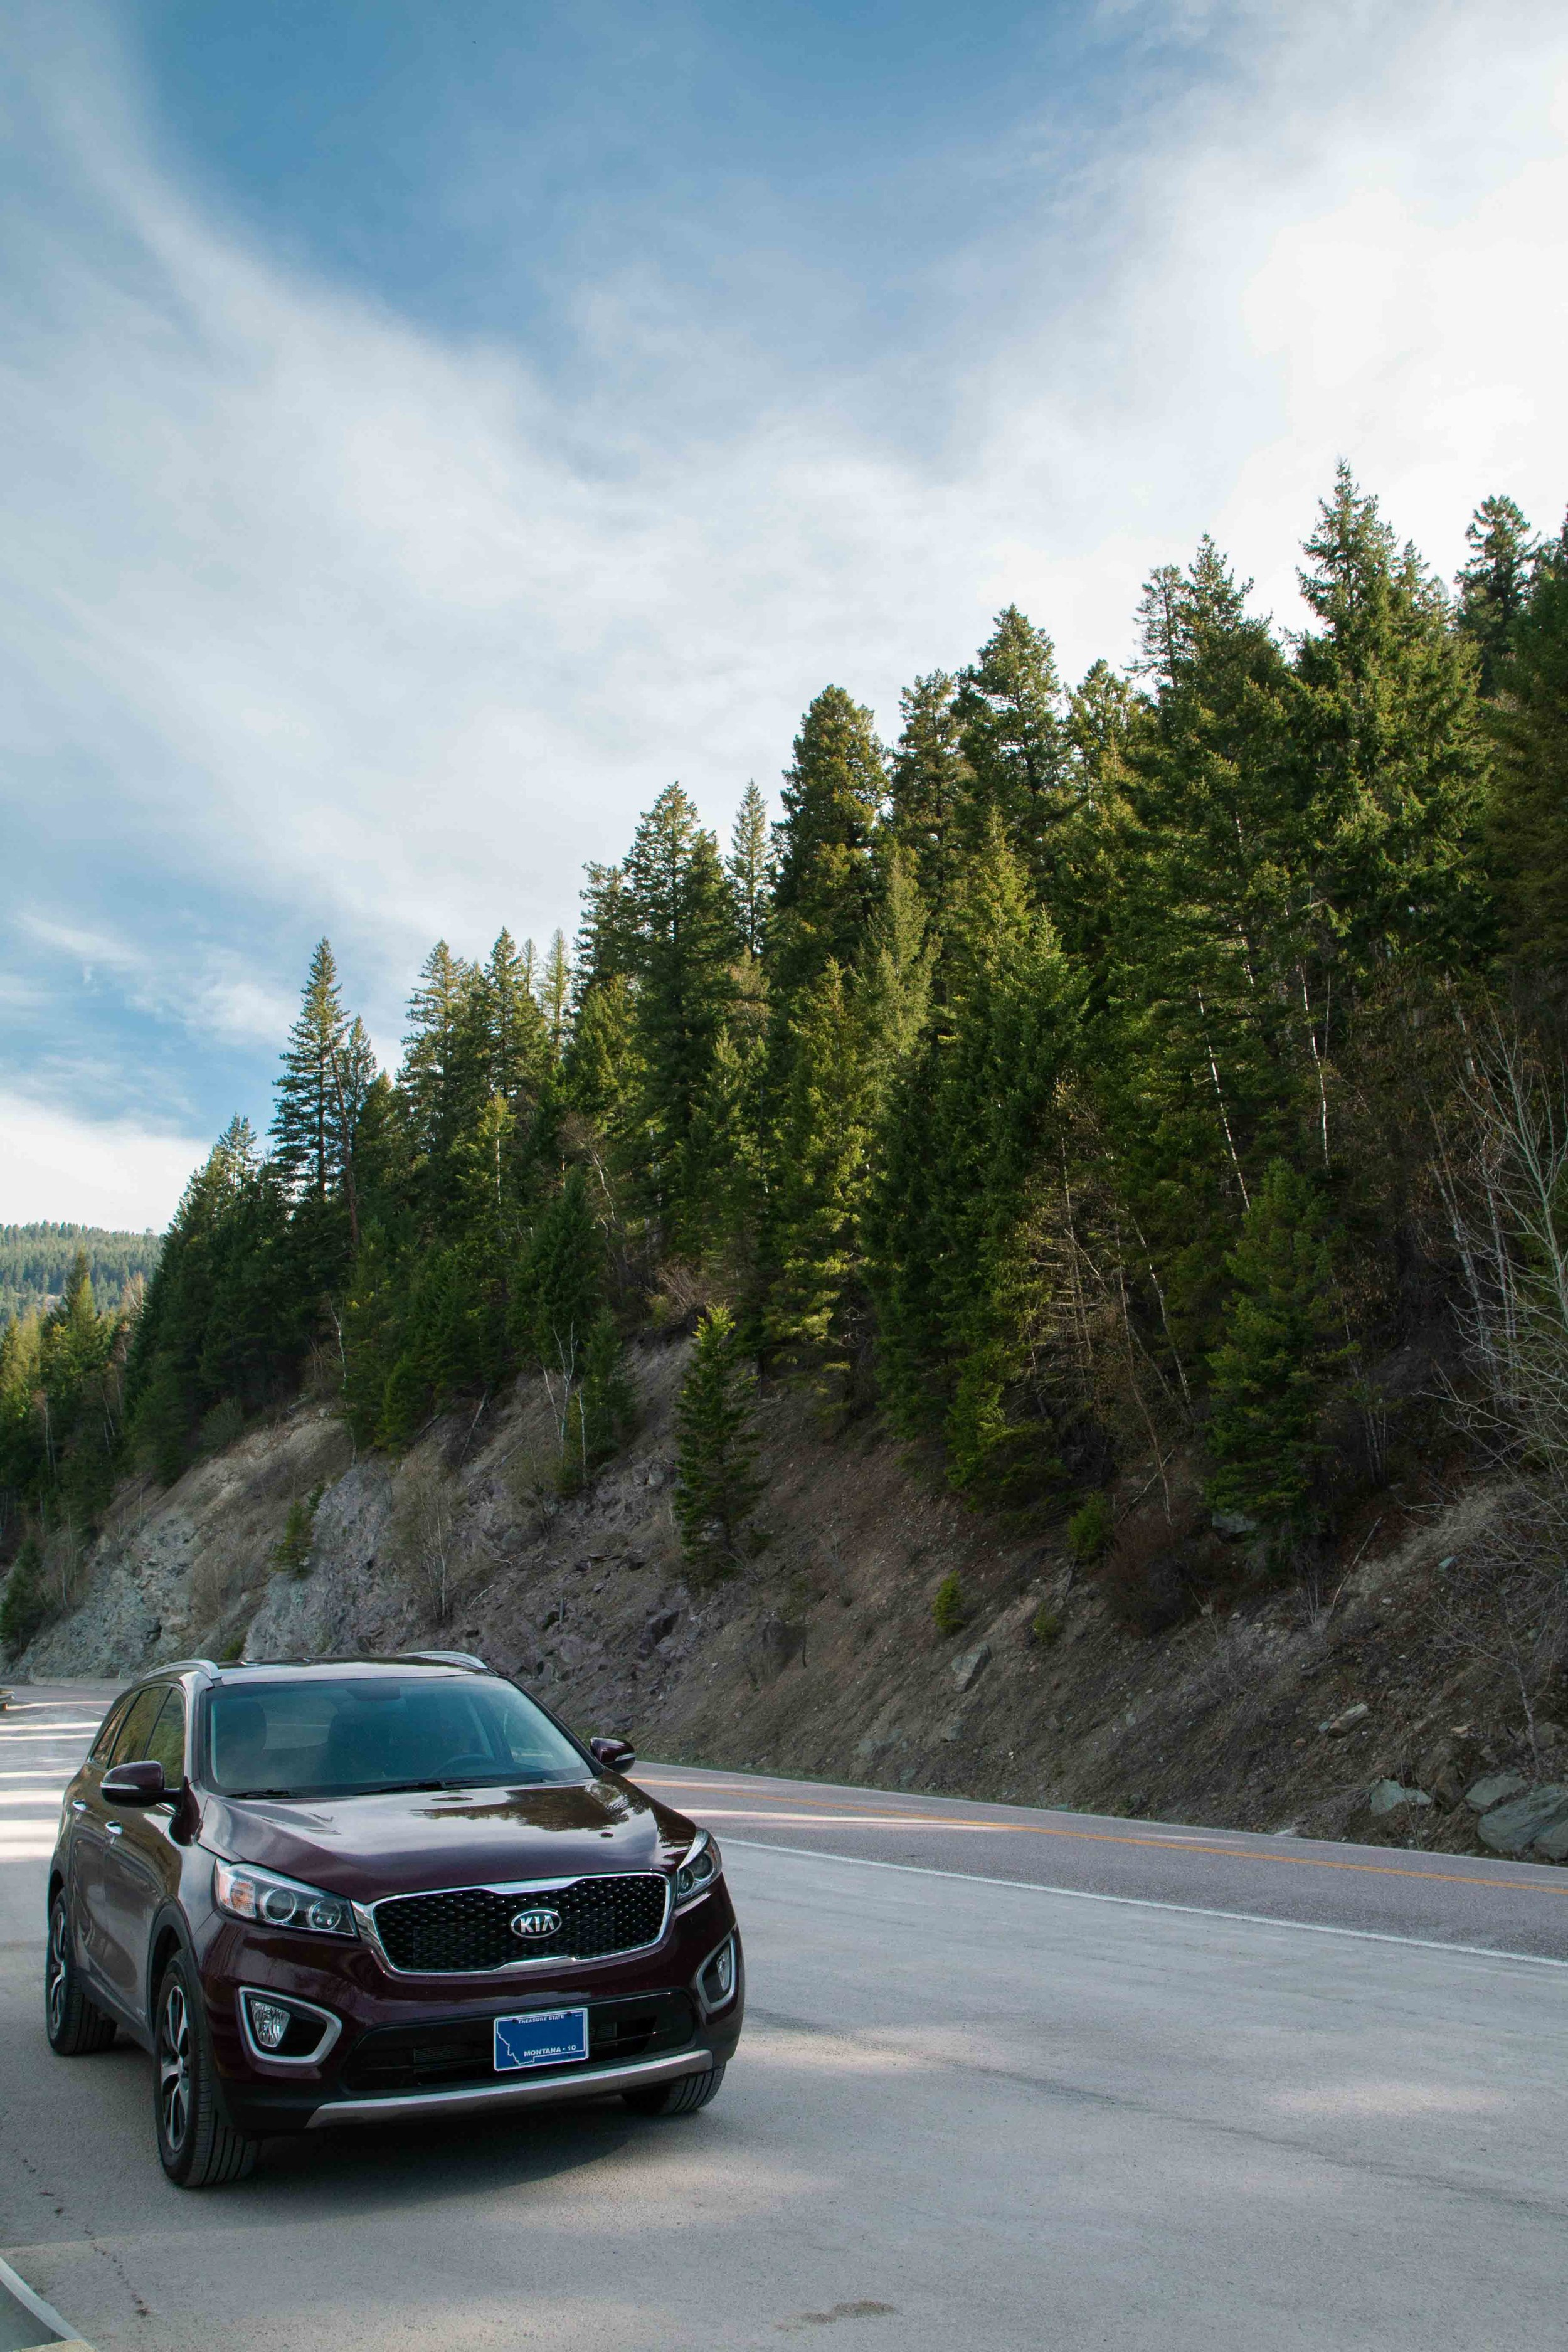 Join travel and lifestyle blogger Bri Sul as a travels around the world! Amazing road side views in Montana along Highway 83.